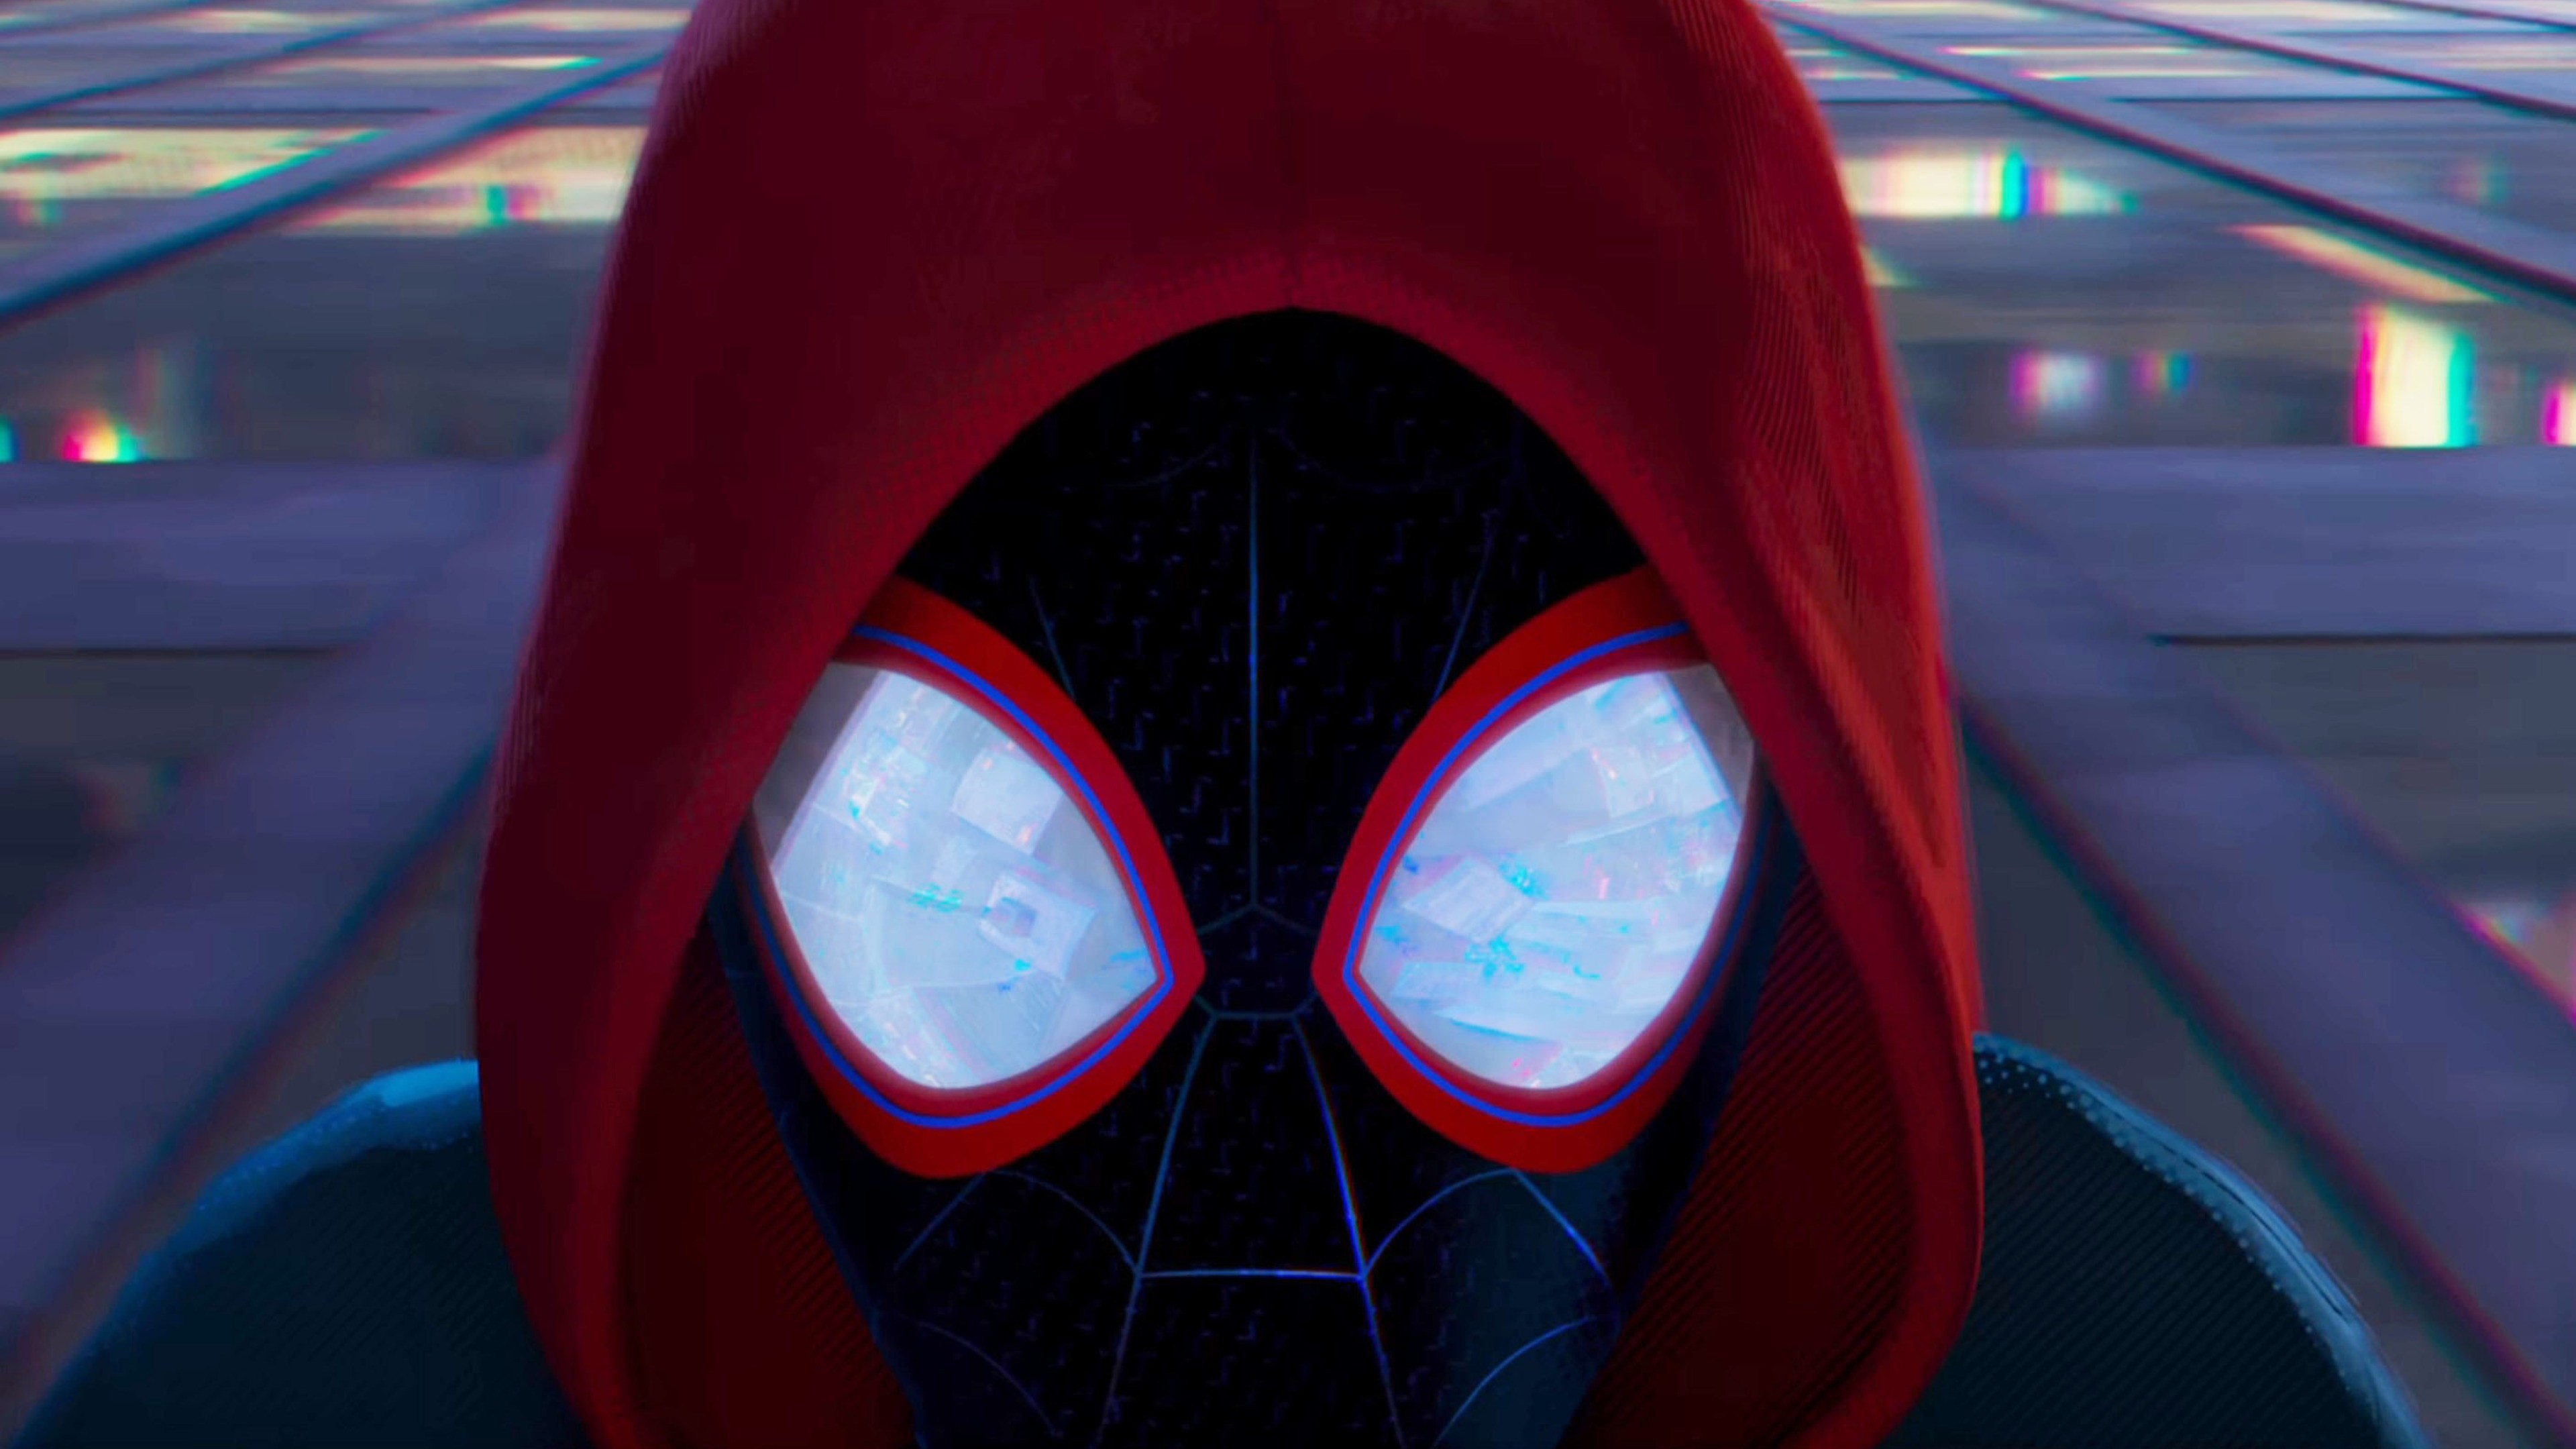 Wallpaper Spider Man Into The Spider Verse 4k Movies 17022